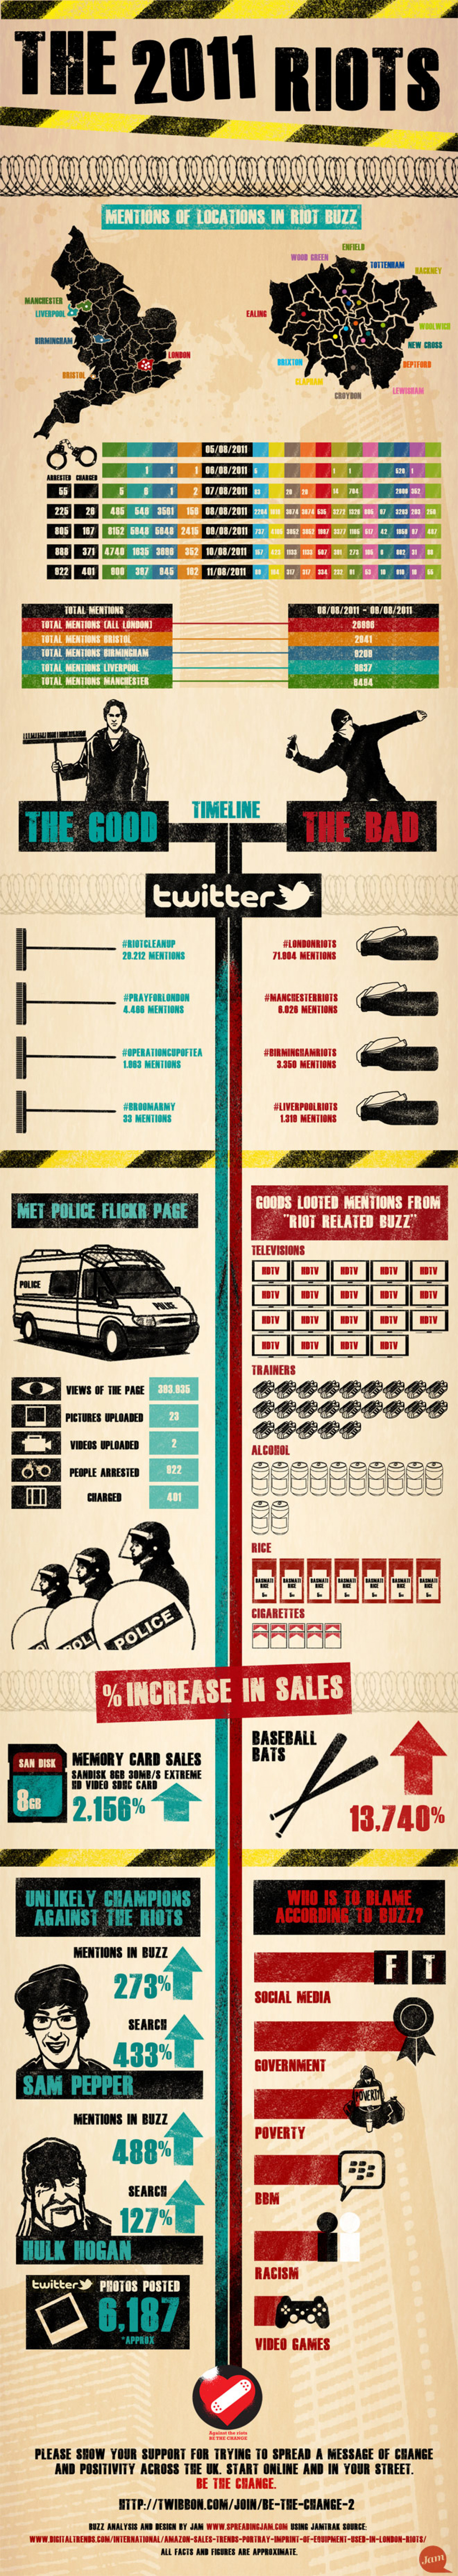 The 2011 Riots  Infographic